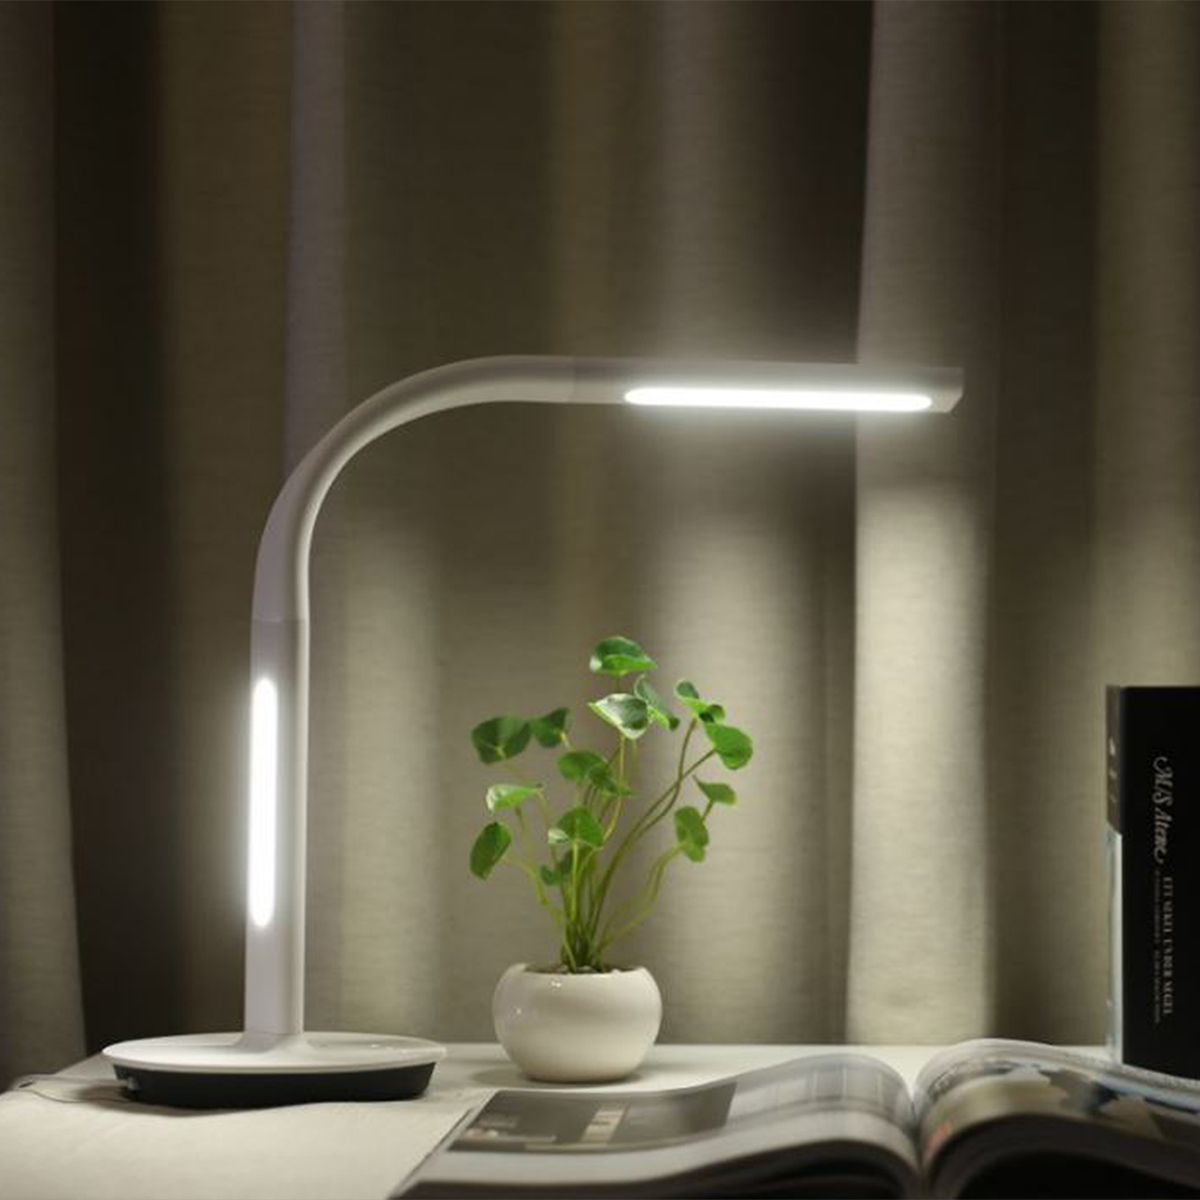 Desk Led Mijia Light Alexa Dimming Enabled Lamp Wifi Home Control Table Remote Xiaomi Mi App With Smart Reading Work vmwN80n